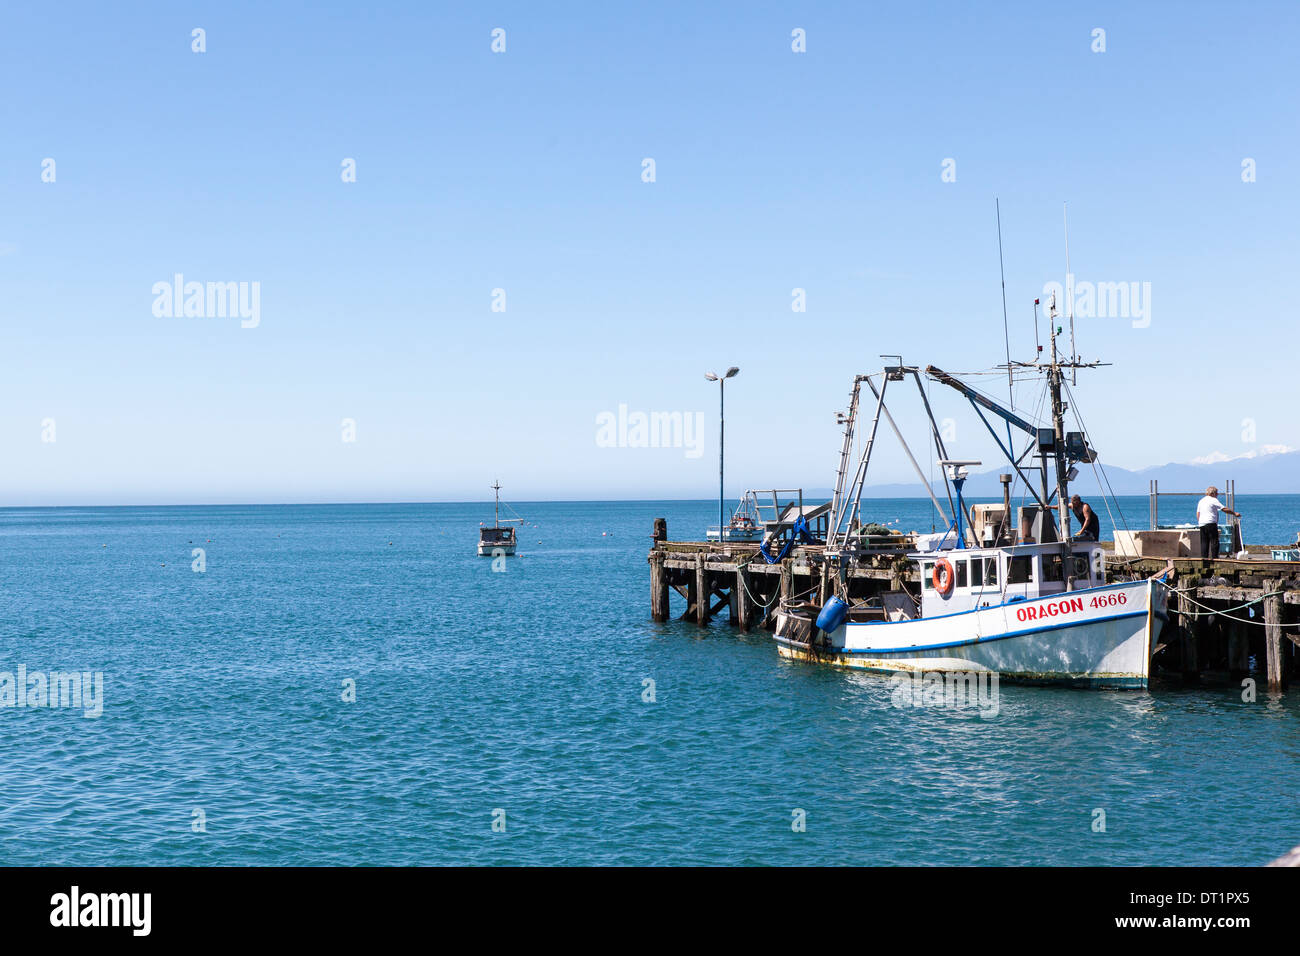 fisher boat in Oragon, New Zealand - Stock Image